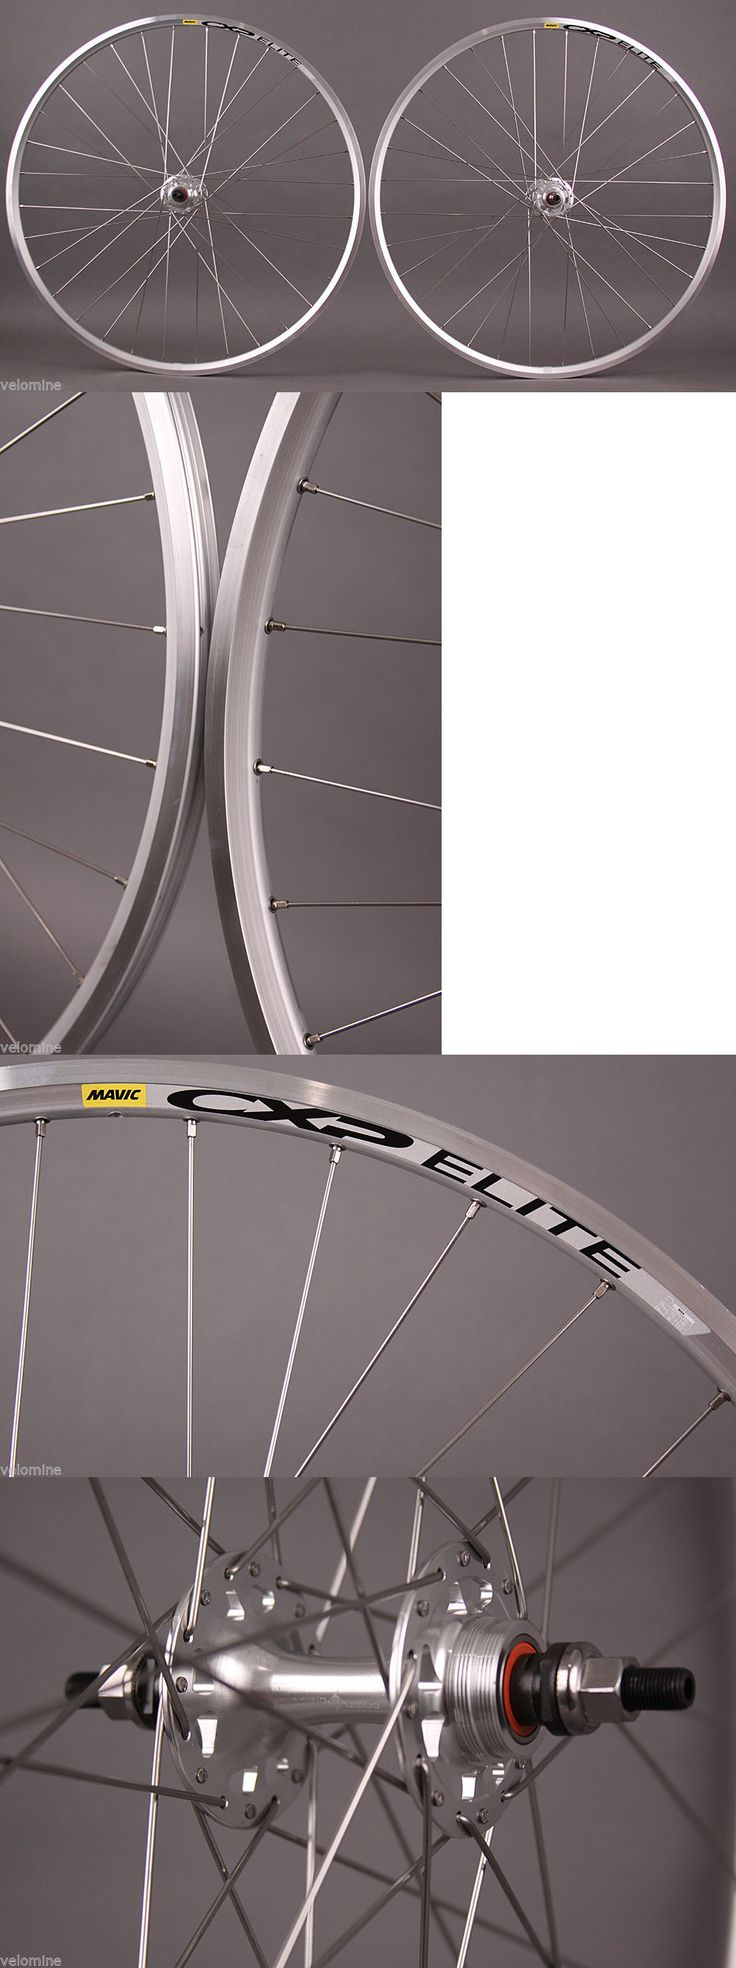 Wheels and Wheelsets 177830: Mavic Cxp Elite Track Fixed Gear Single Speed Wheelset Silver 32H Formula Hub BUY IT NOW ONLY: $159.0